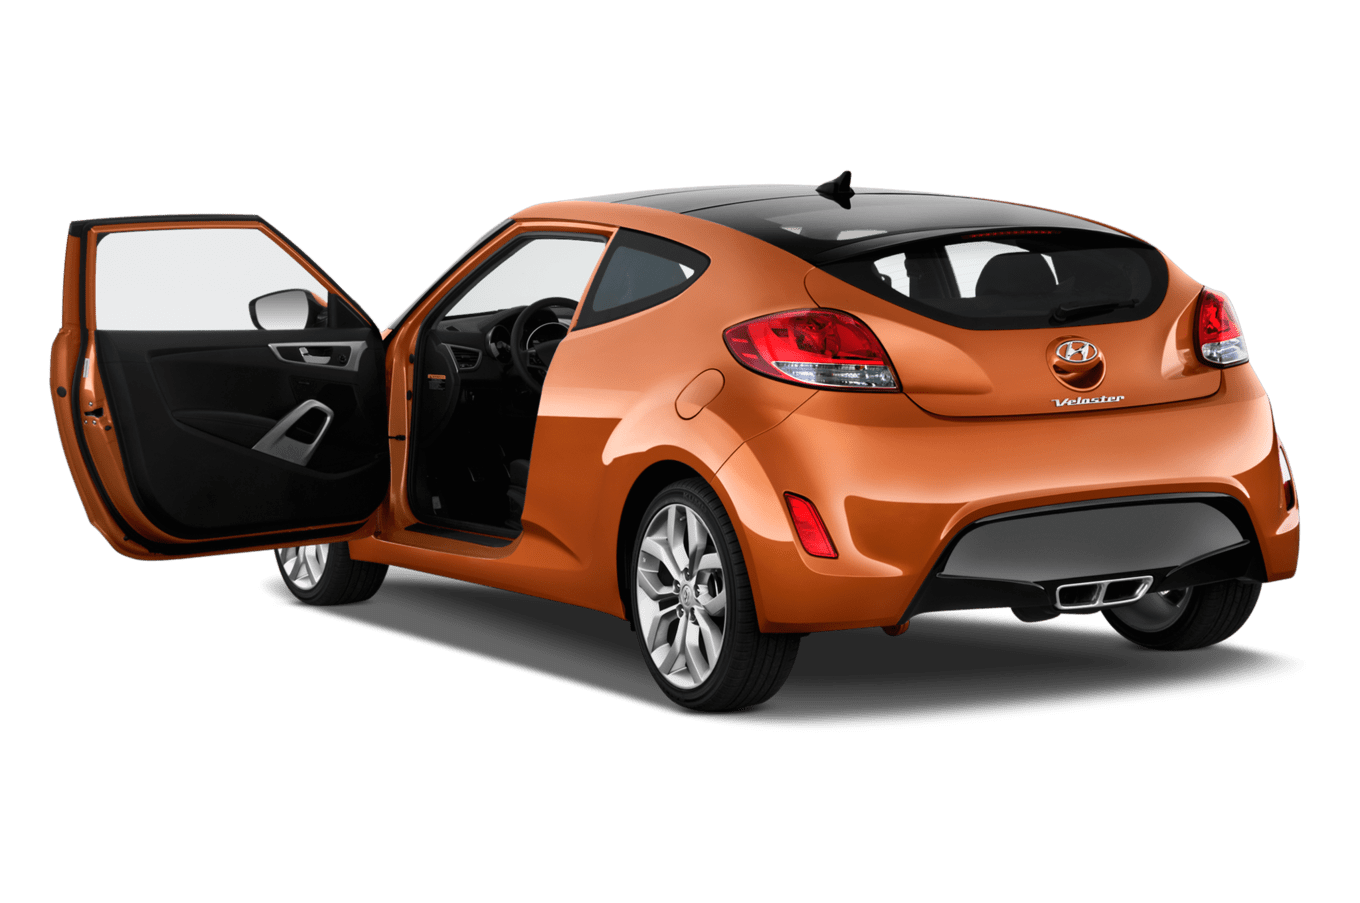 Le Meilleur 2014 Hyundai Veloster Reviews And Rating Motor Trend Ce Mois Ci